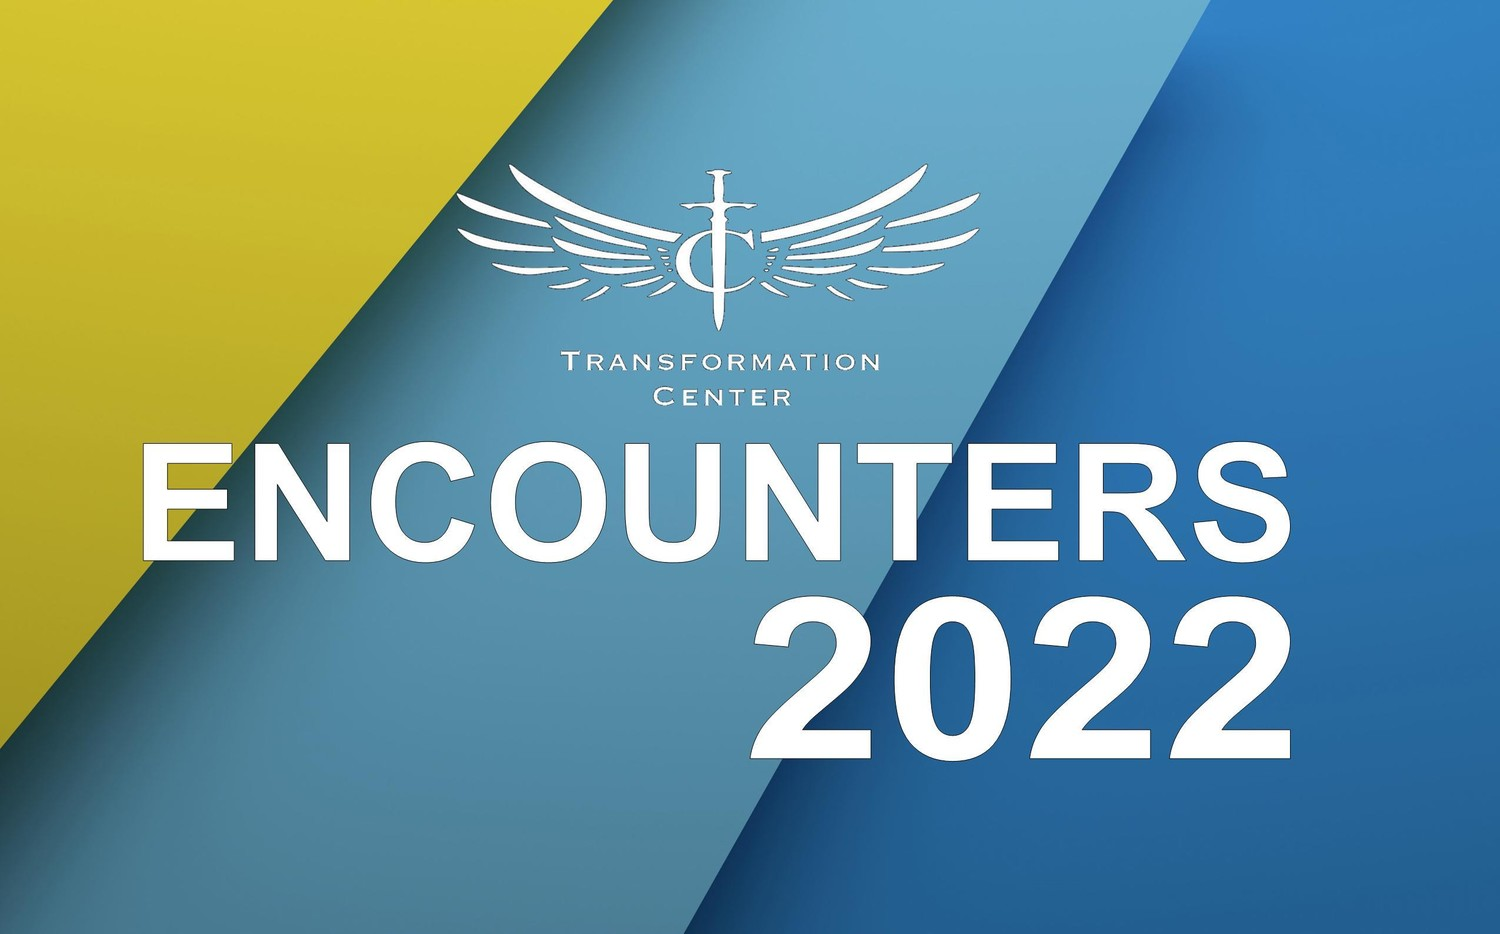 График Инкаунтеров TCCI на 2018 год / Transformation Center Encounters 2018